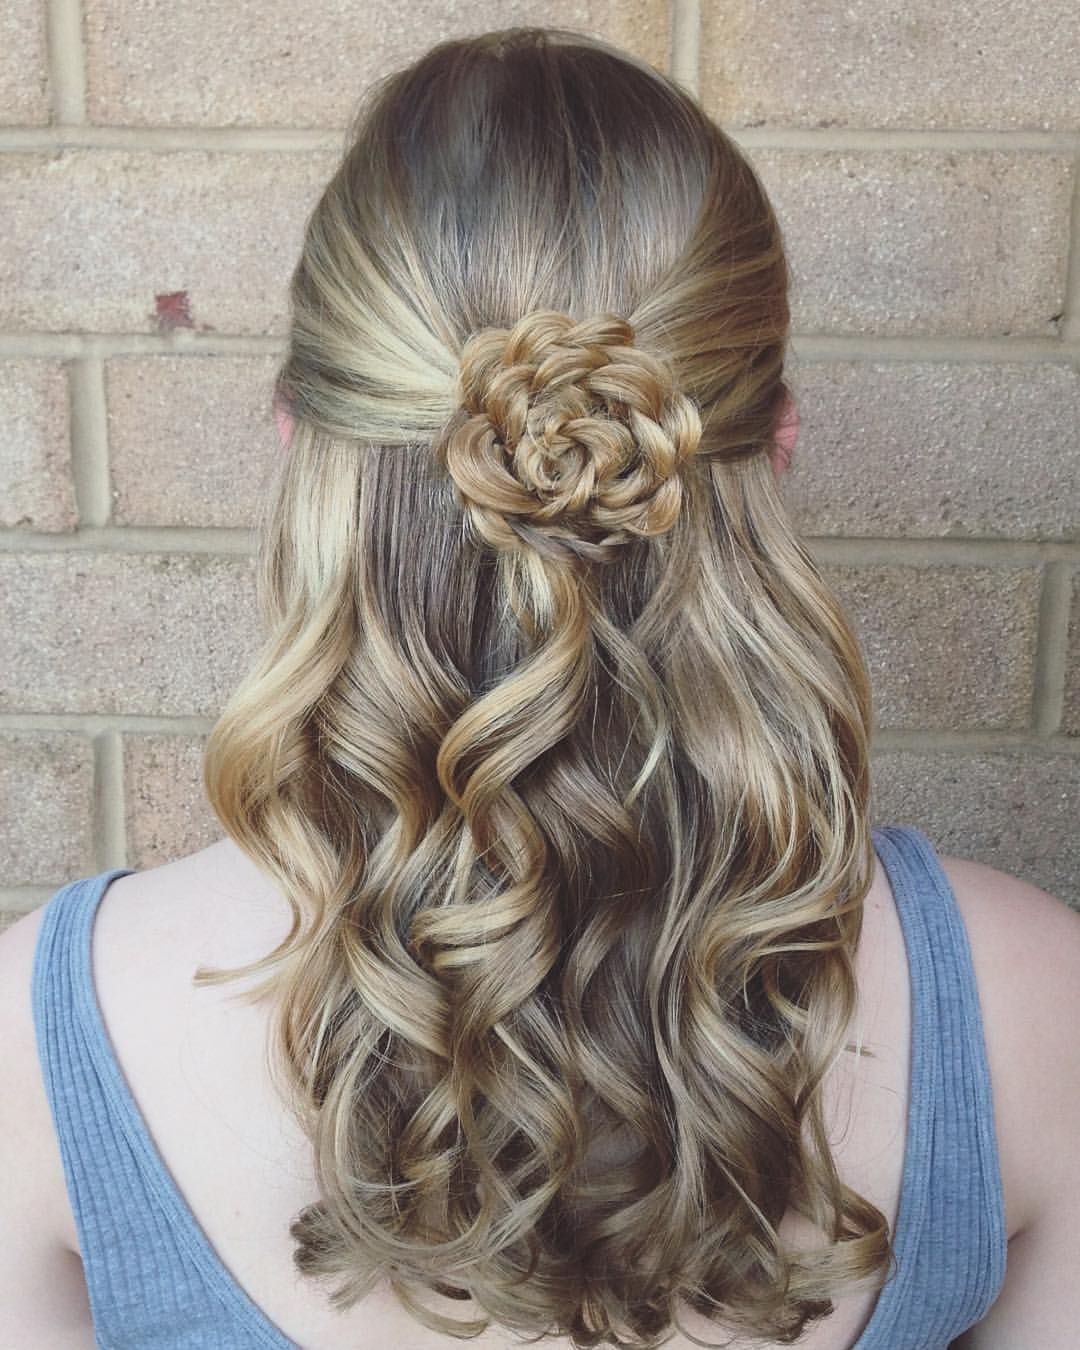 Abigail rose on instagram ucthose curls a flower braid ud prom